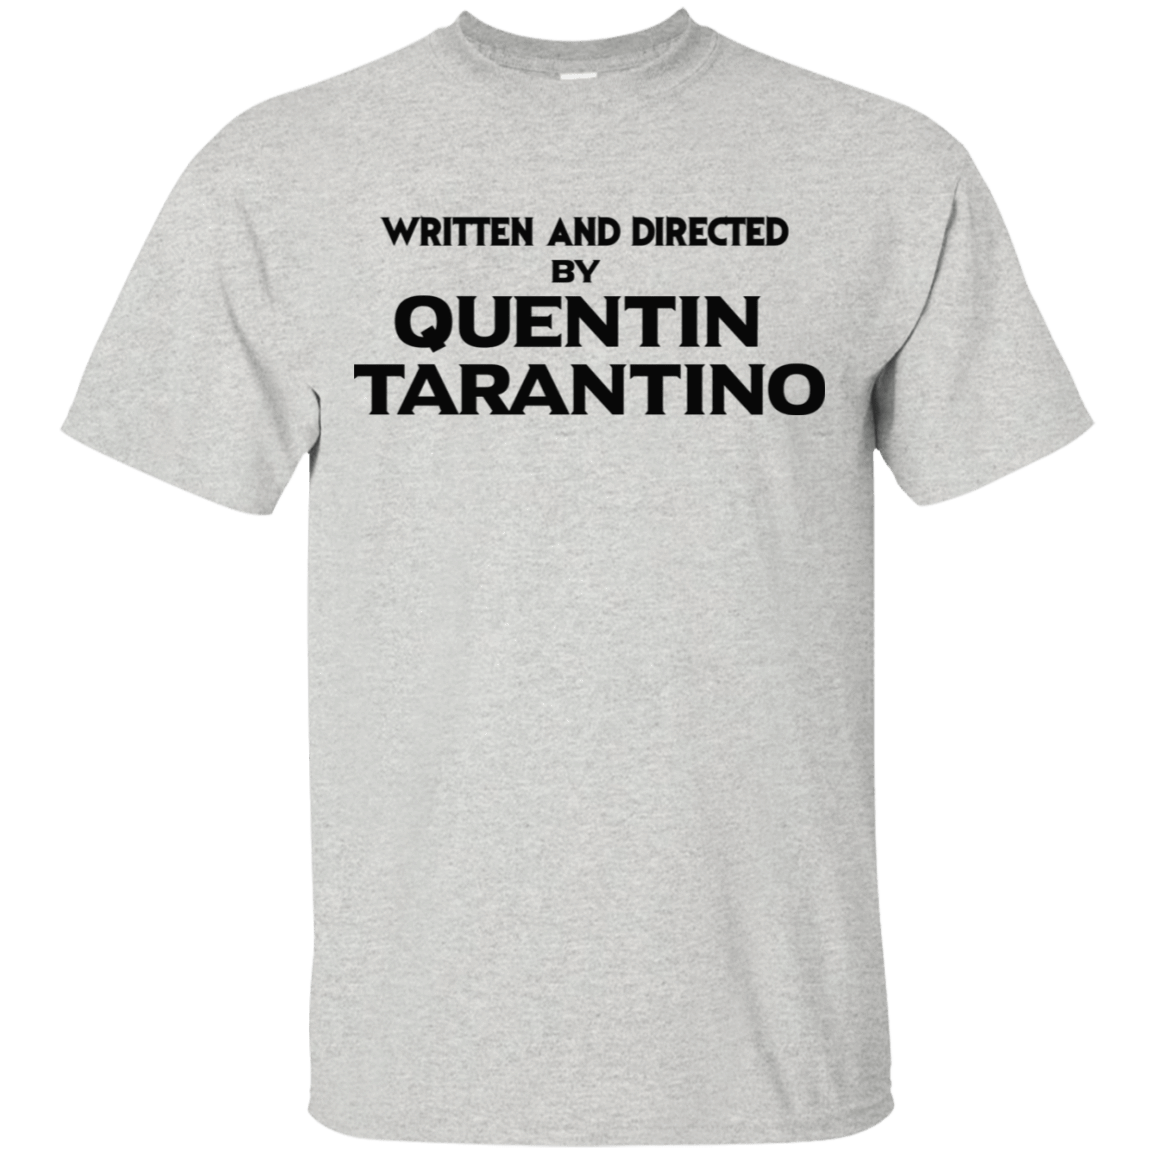 Written And Directed By Quentin Tarantino 22-2475-71738998-12568 - Tee Ript